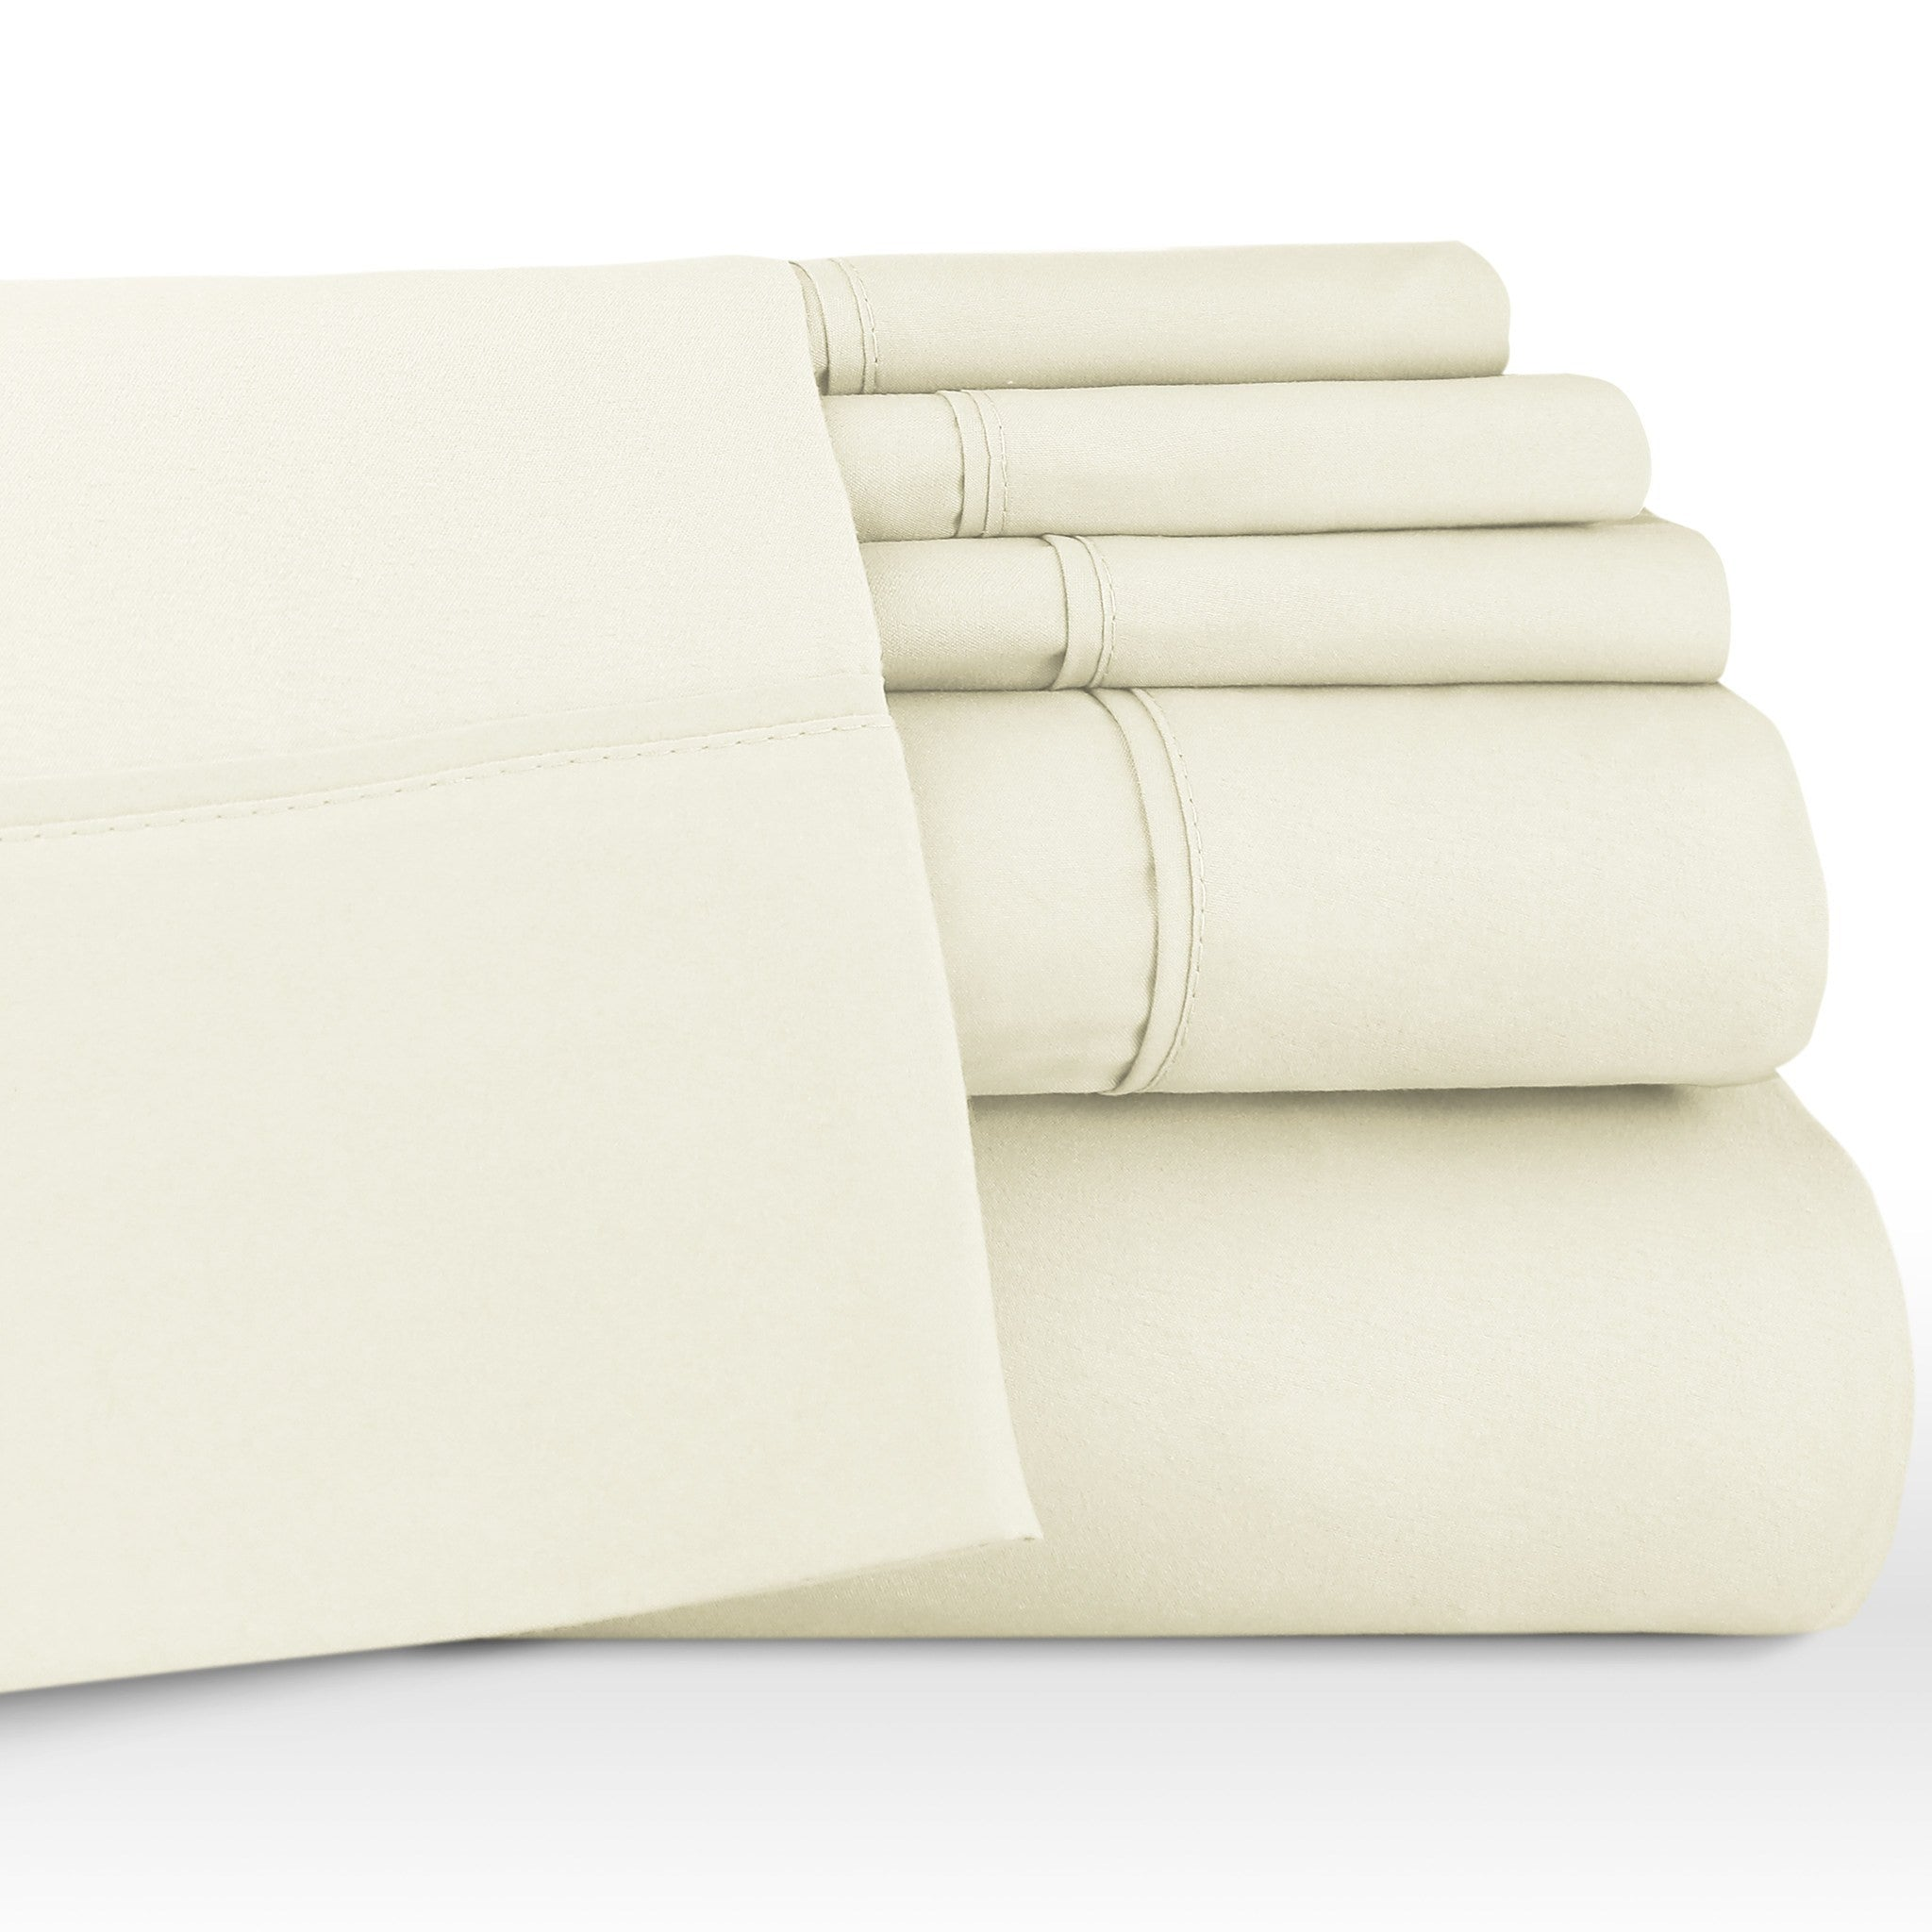 Home, Bedding & Linens, Sheets & Pillowcases - Bora Bora Bamboo Bed Sheets